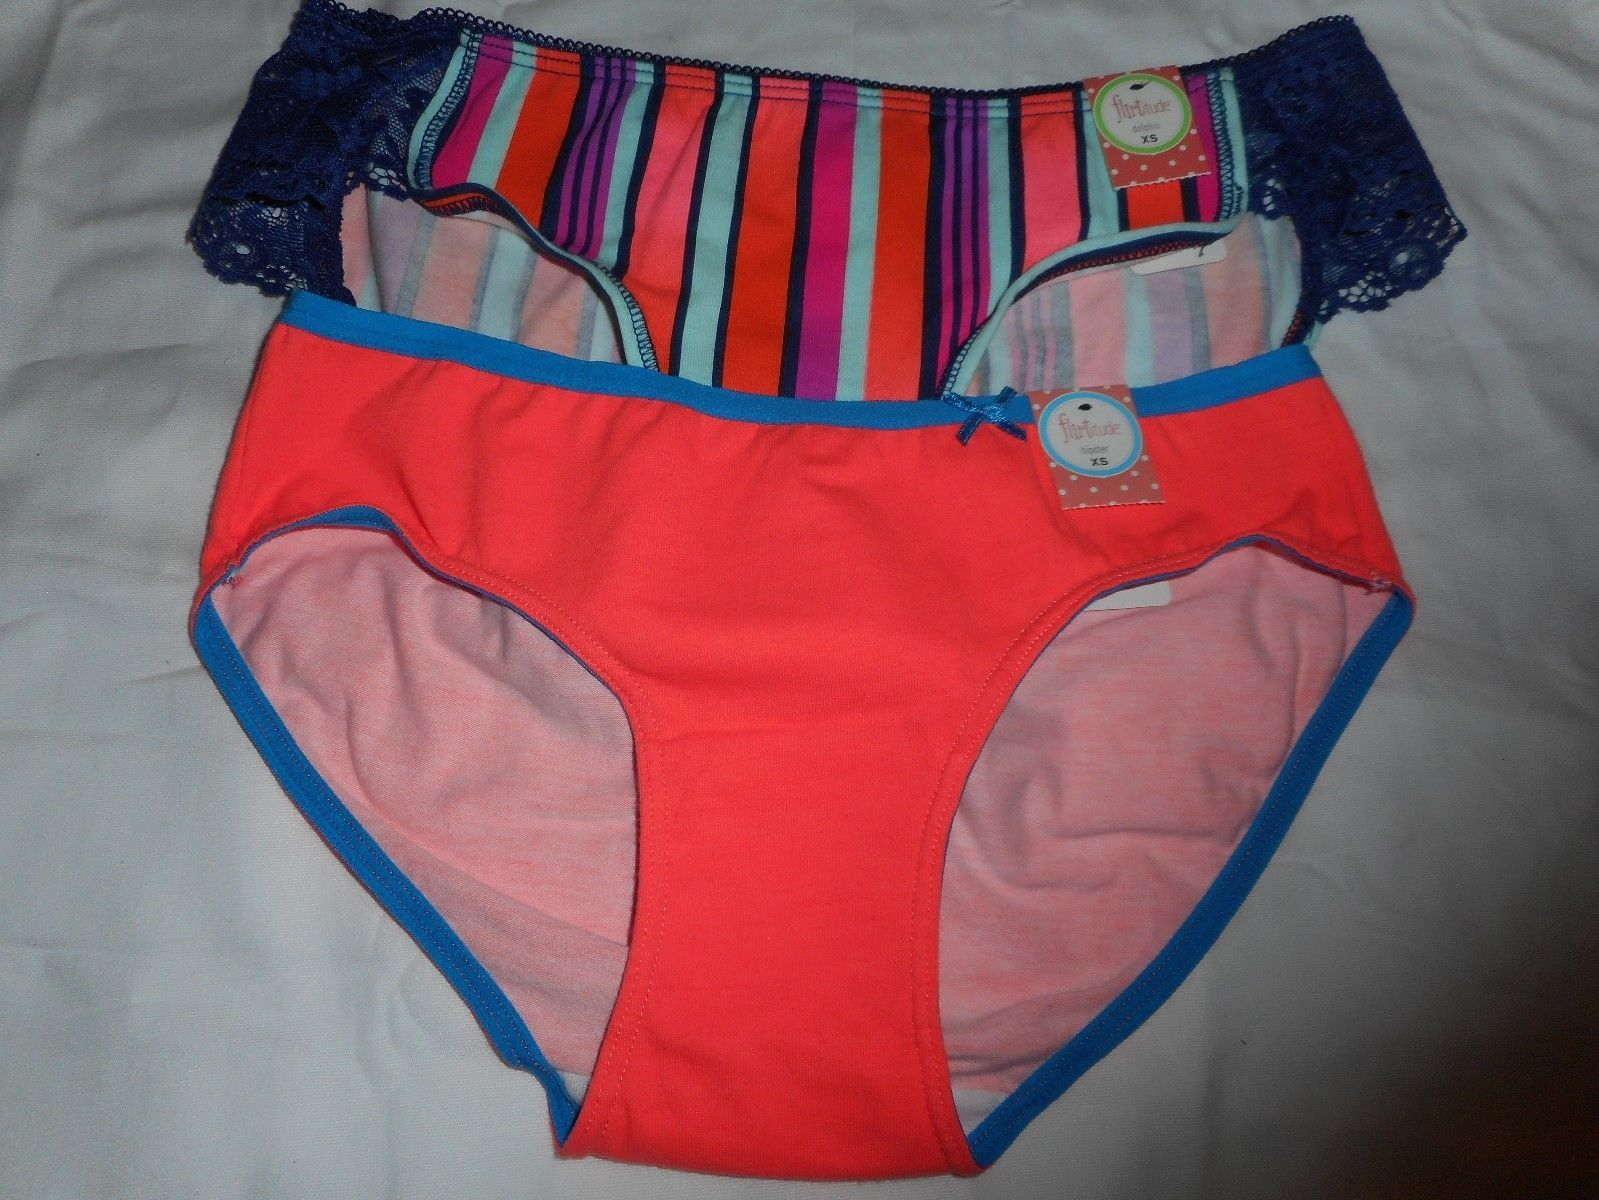 Women's Flirtitude Hipster Panties Set of 2 X-Small Stripes & Very Coral 21 - $13.85